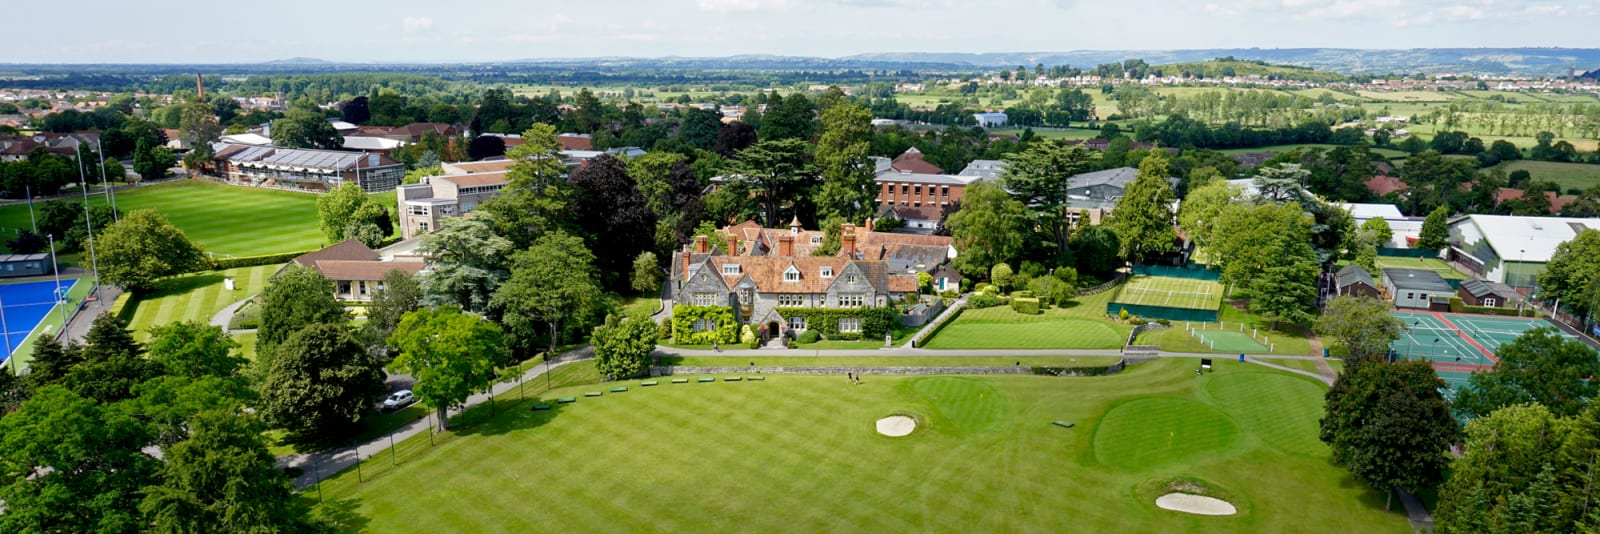 Our Campuses - Millfield School